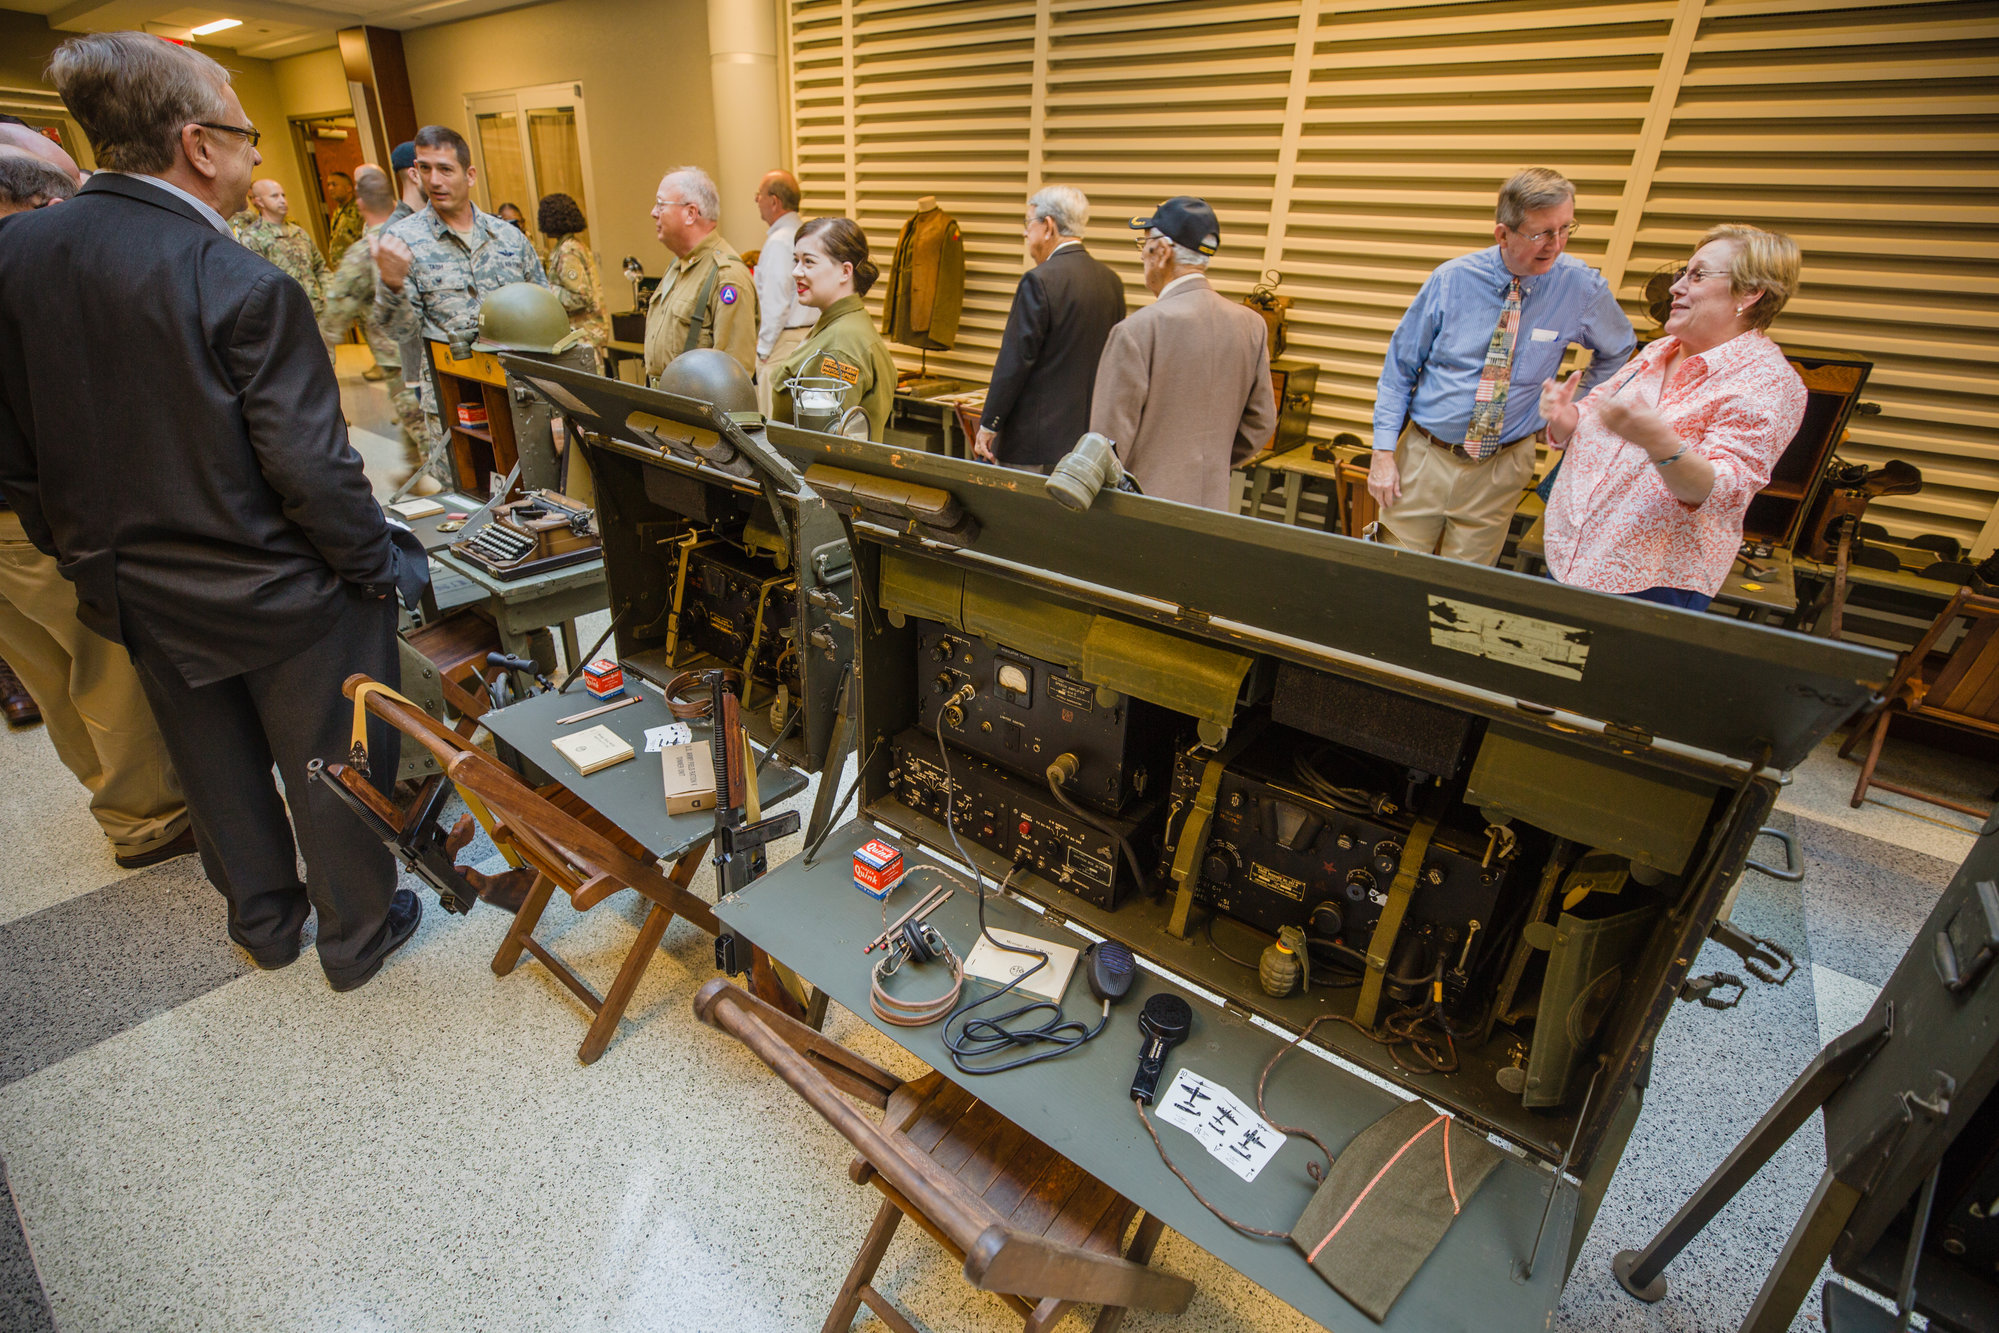 Replica and refurbished pieces from World War II were on display in one of the halls at ARCENT Headquarters after touring the building on Wednesday in celebration of Third Army's 100th birthday.